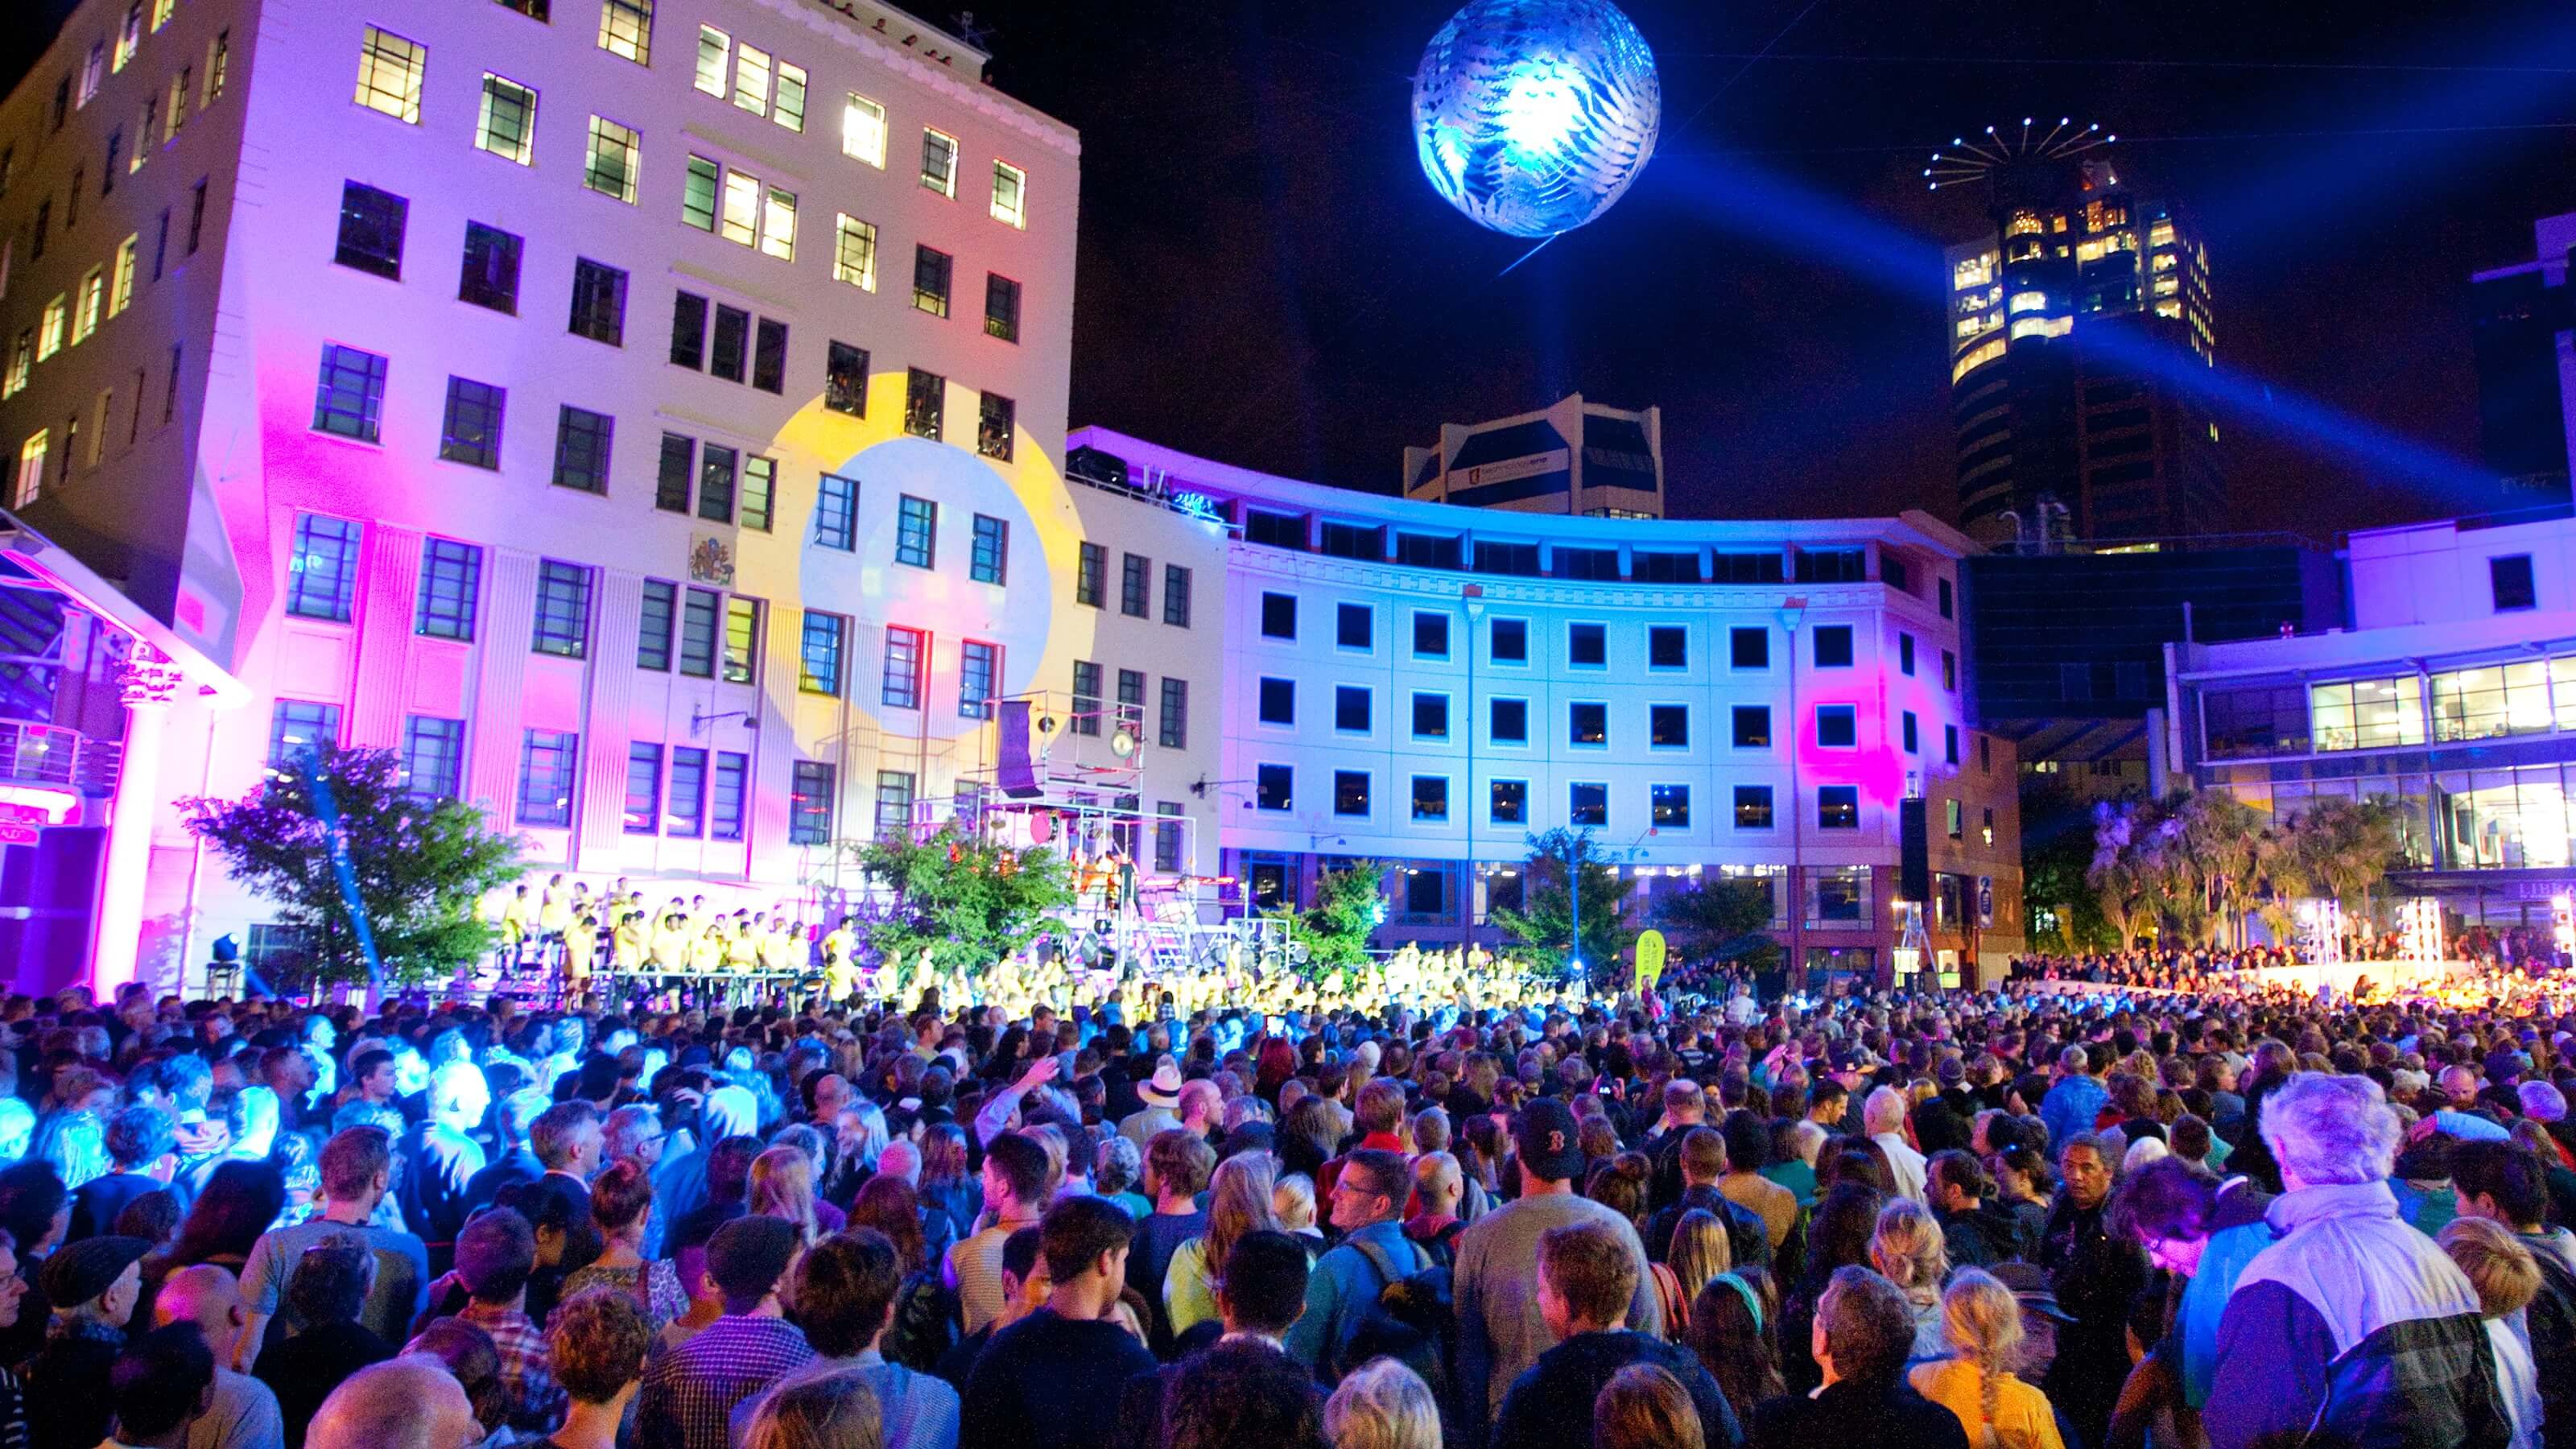 Crowd of people in Wellington civic square for lights festival.